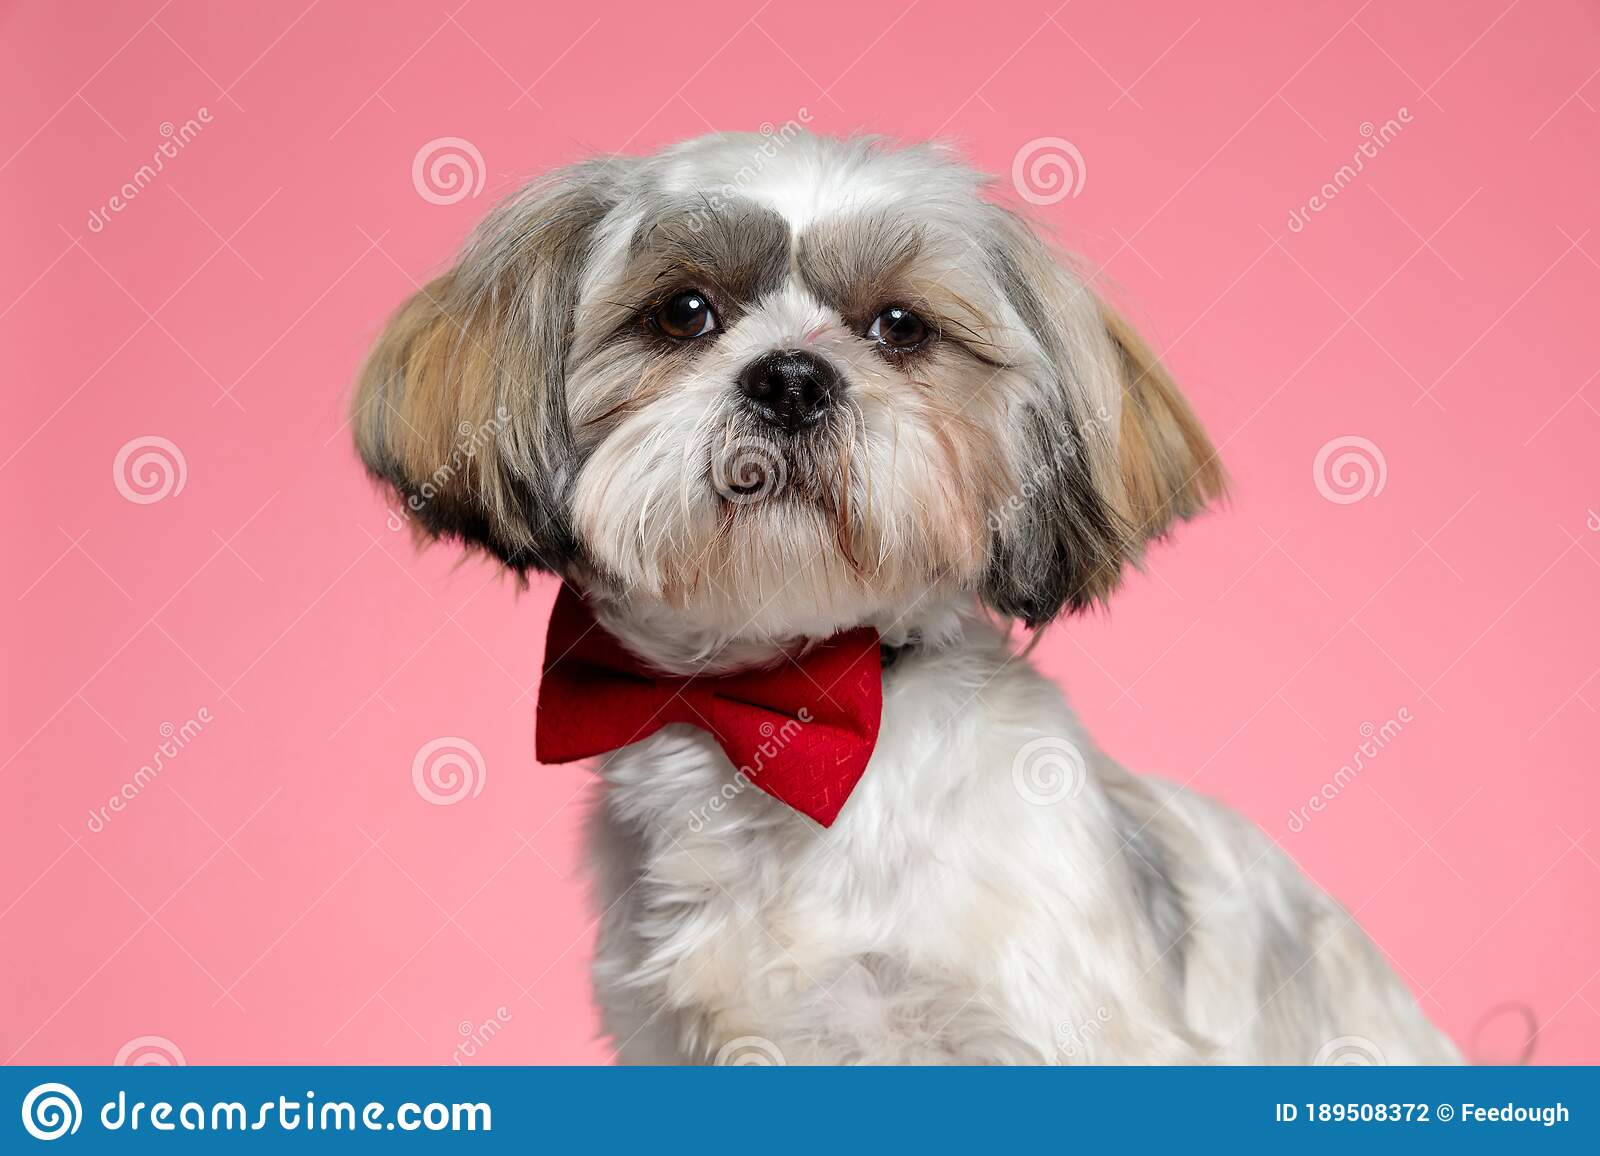 Cute Shih Tzu Puppy Wearing Red Bowtie And Looking To Side Stock Photo Image Of Animal Adorable 189508372